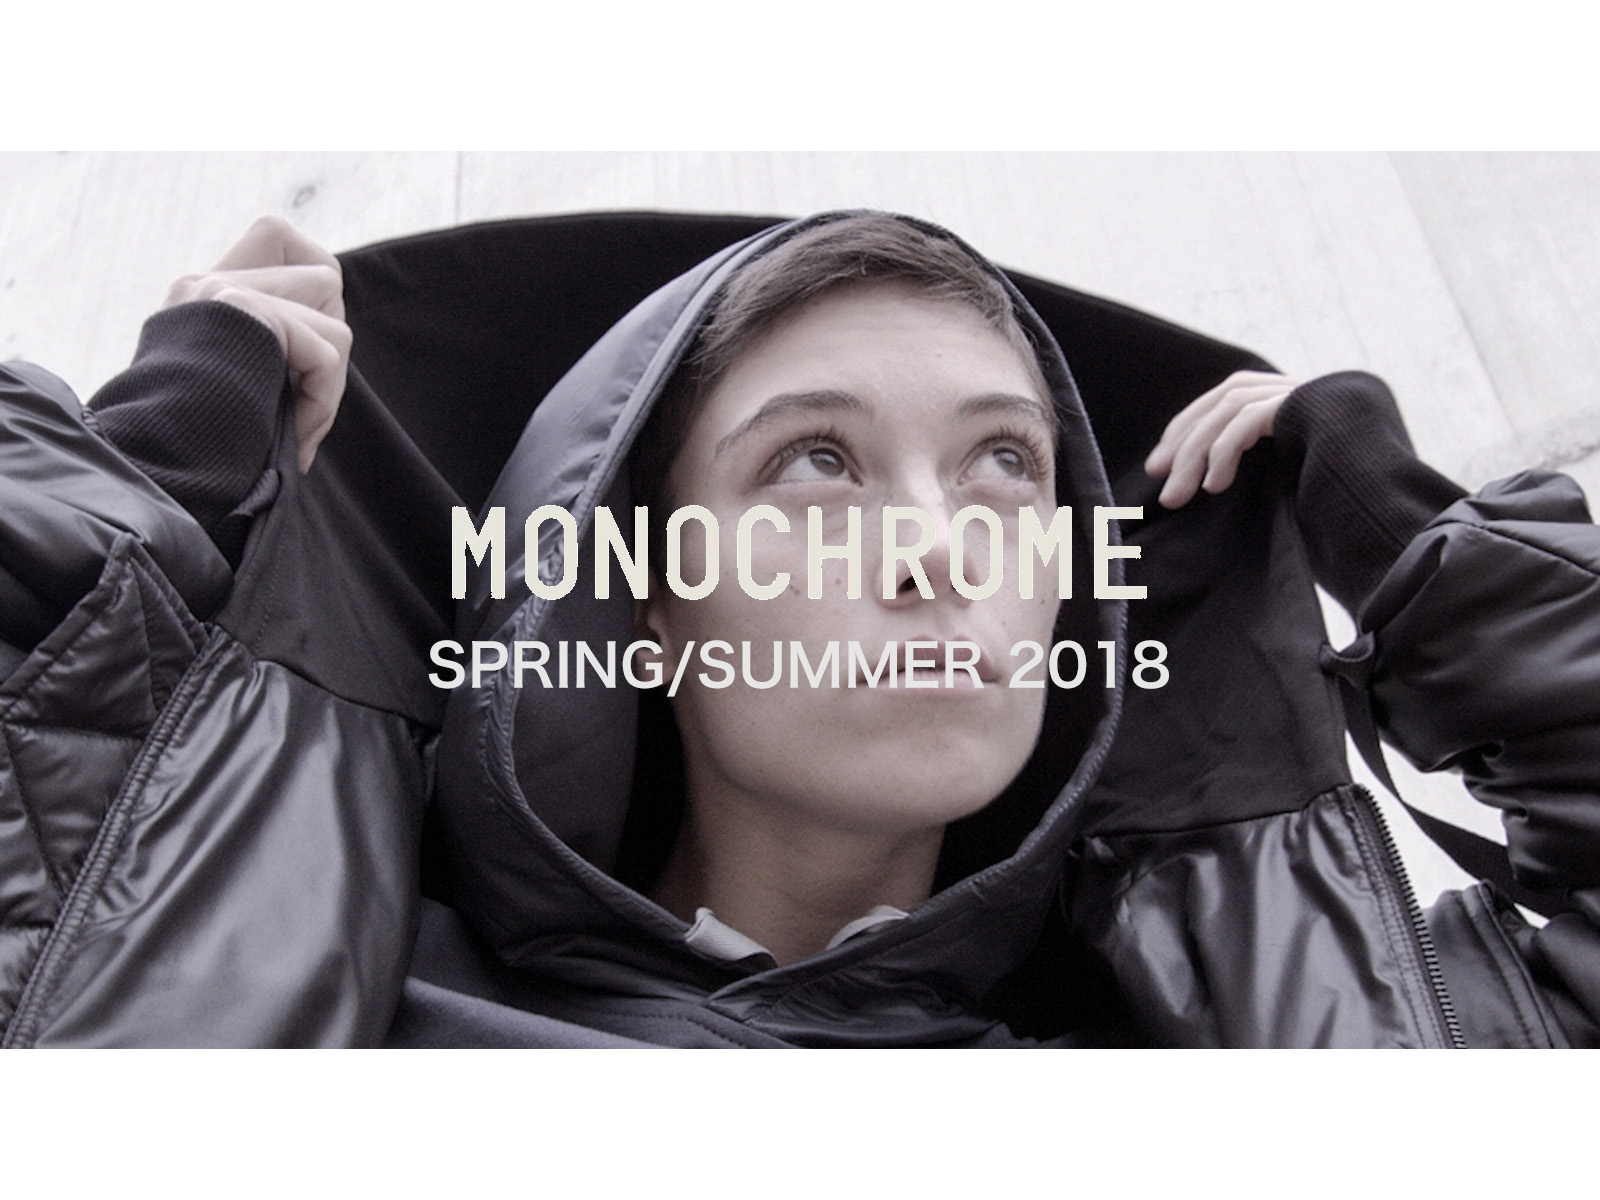 MONOCHROME SS18 – Inspired by Zaha Hadid